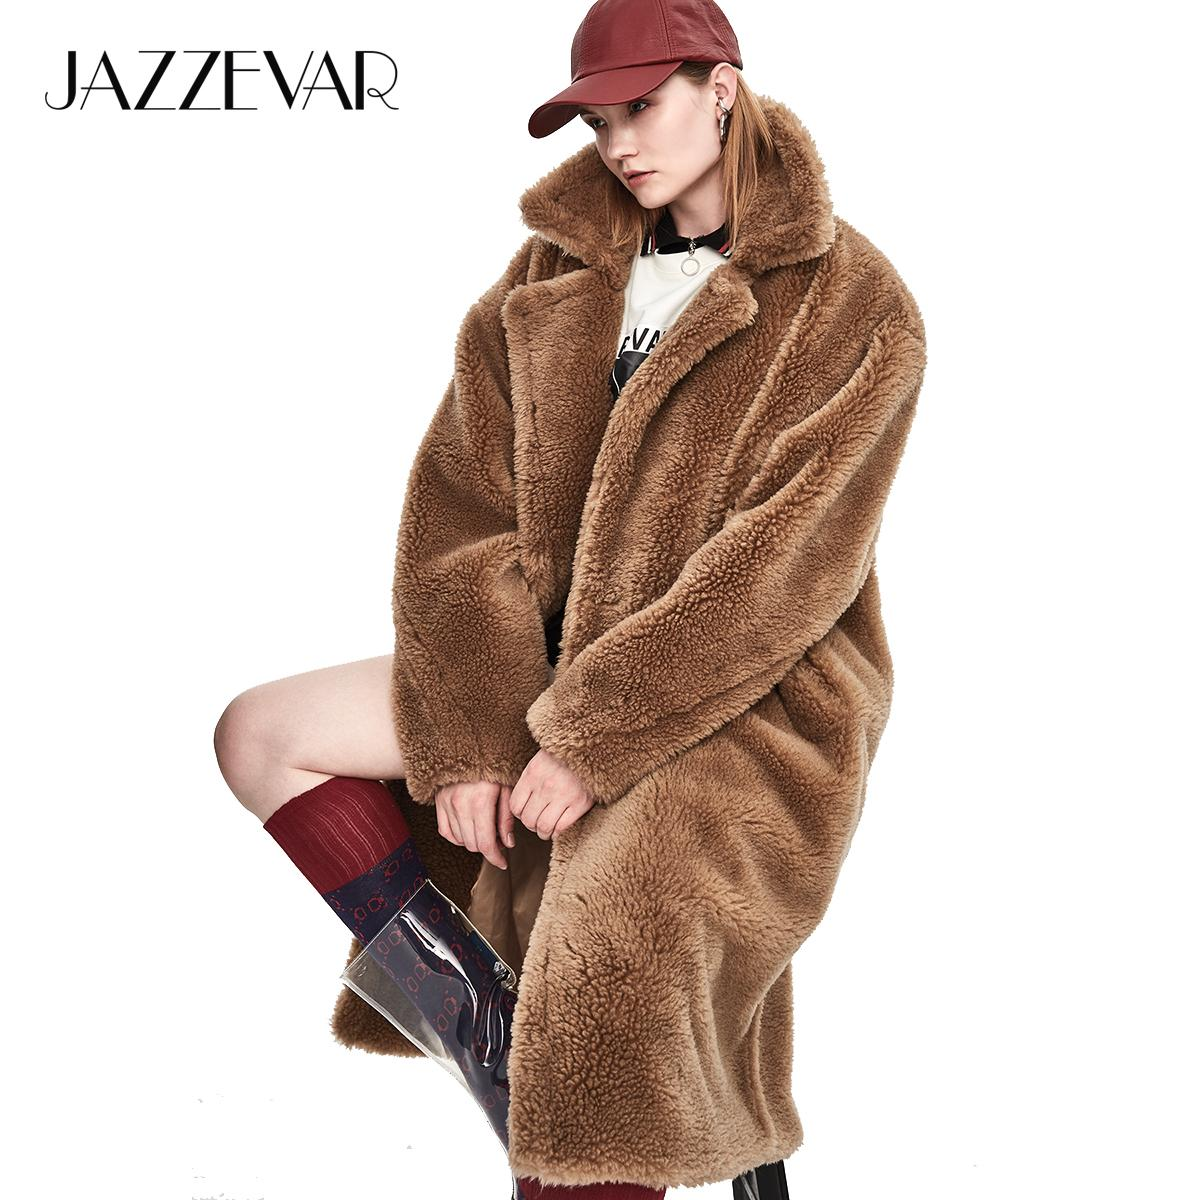 85aeb6a17ac8 JAZZEVAR 2018 Winter New Fashion Womens Teddy Bear Icon Coat X Long Real  Sheep Fur Oversized Parka Thick Warm Outerwear S18101102 Brown Leather  Jacket ...